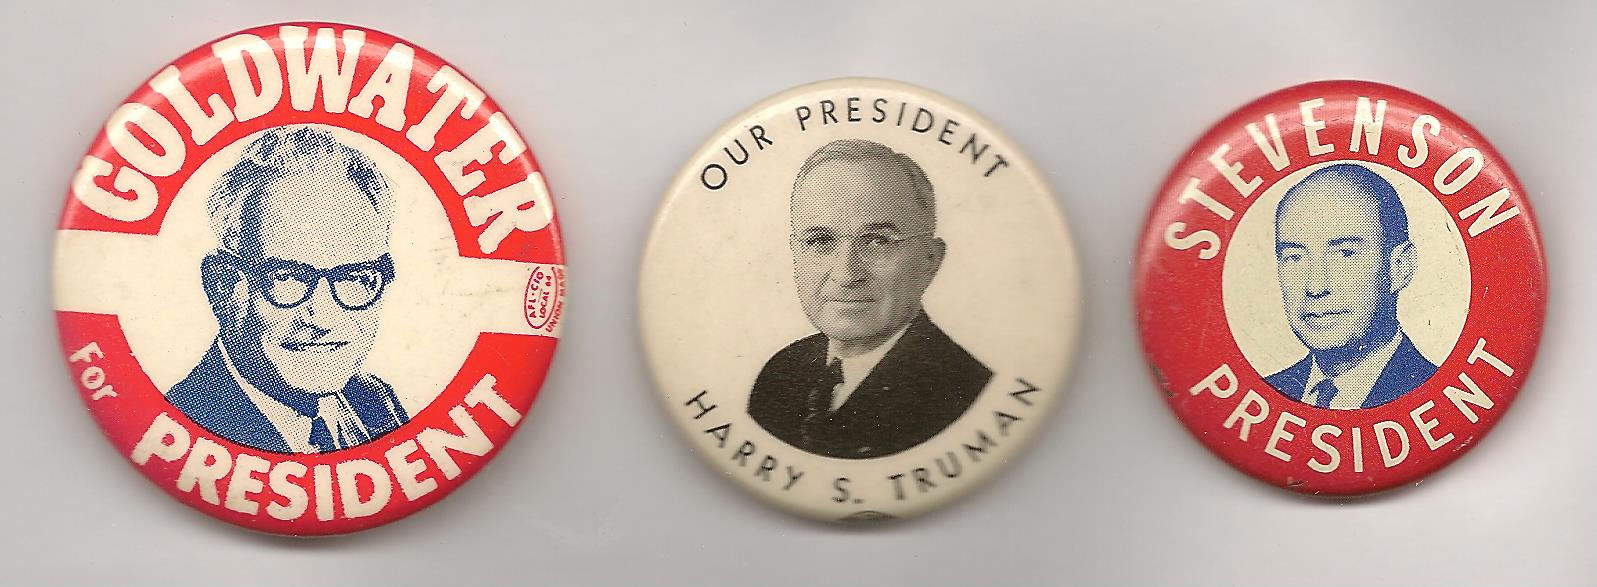 Goldwater and Stevenson never made it to the White House, and Truman left office with dismal polling numbers.  Successful pols?